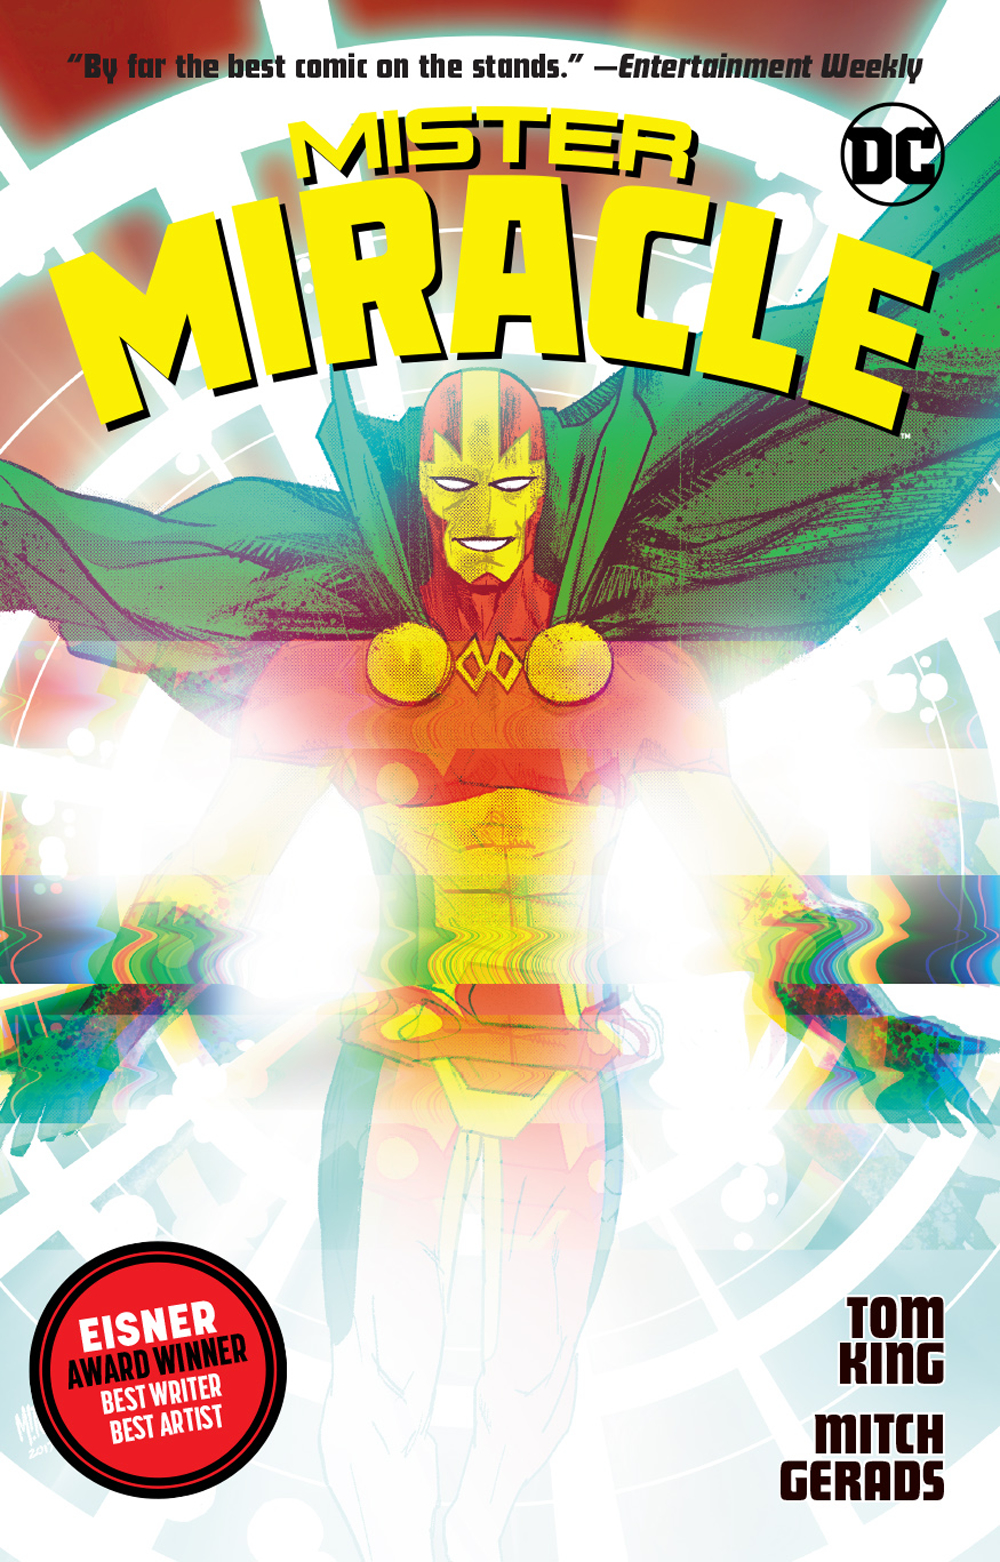 MISTER MIRACLE TP (OCT180598) (MR)